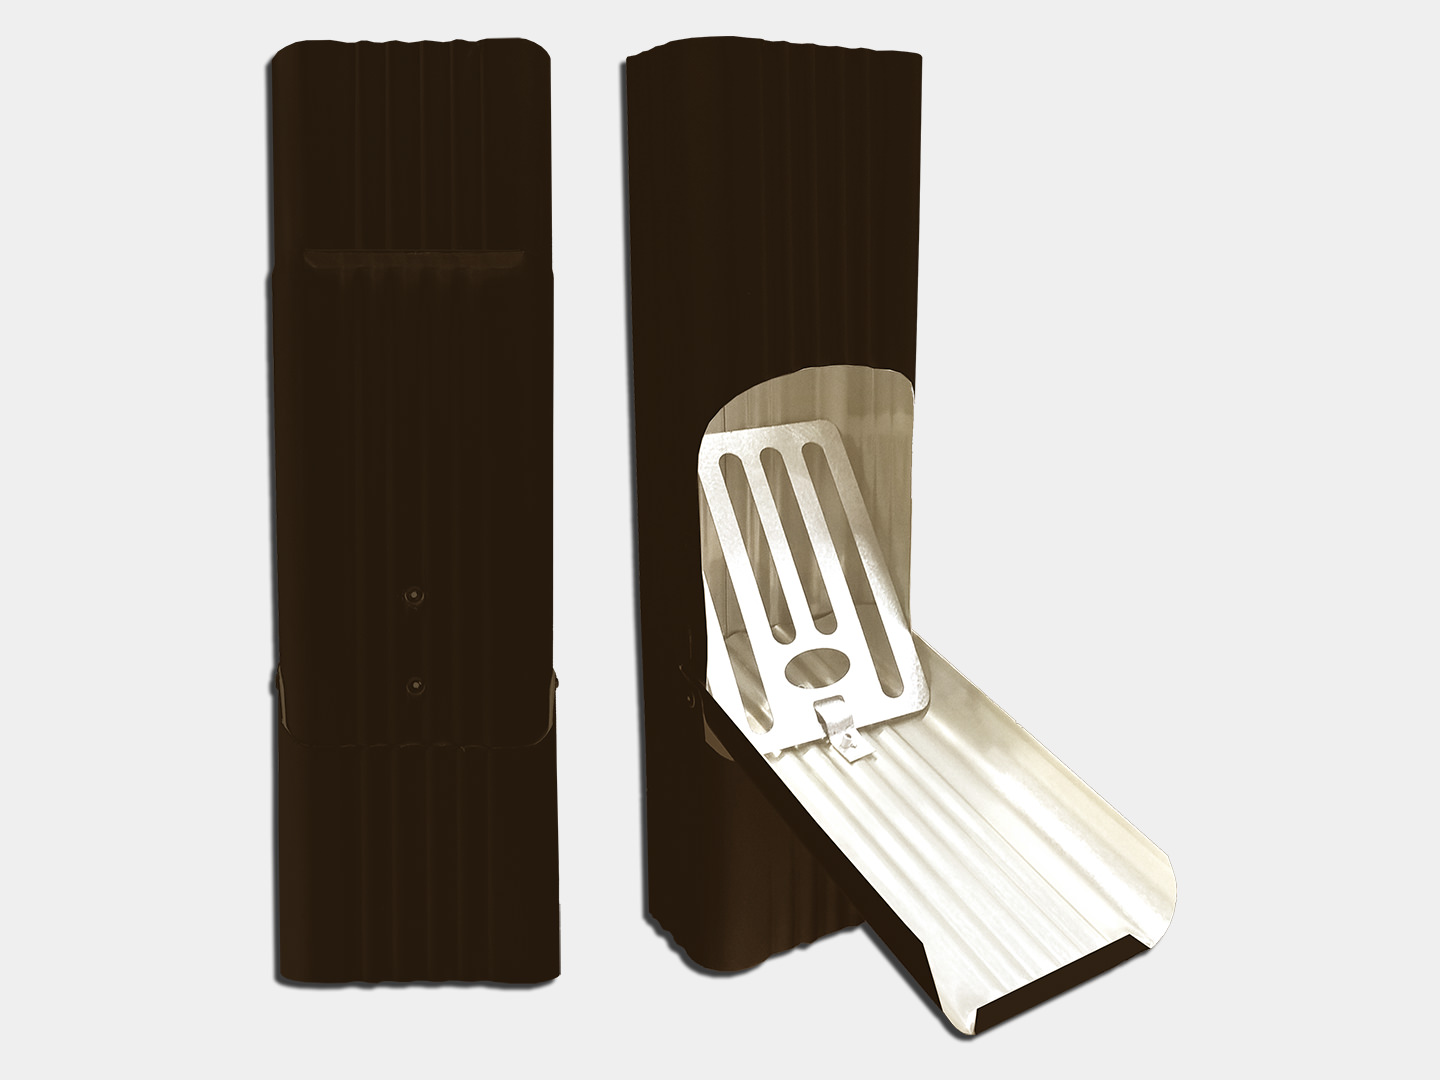 Square corrugated black steel downspout cleanout for leaves